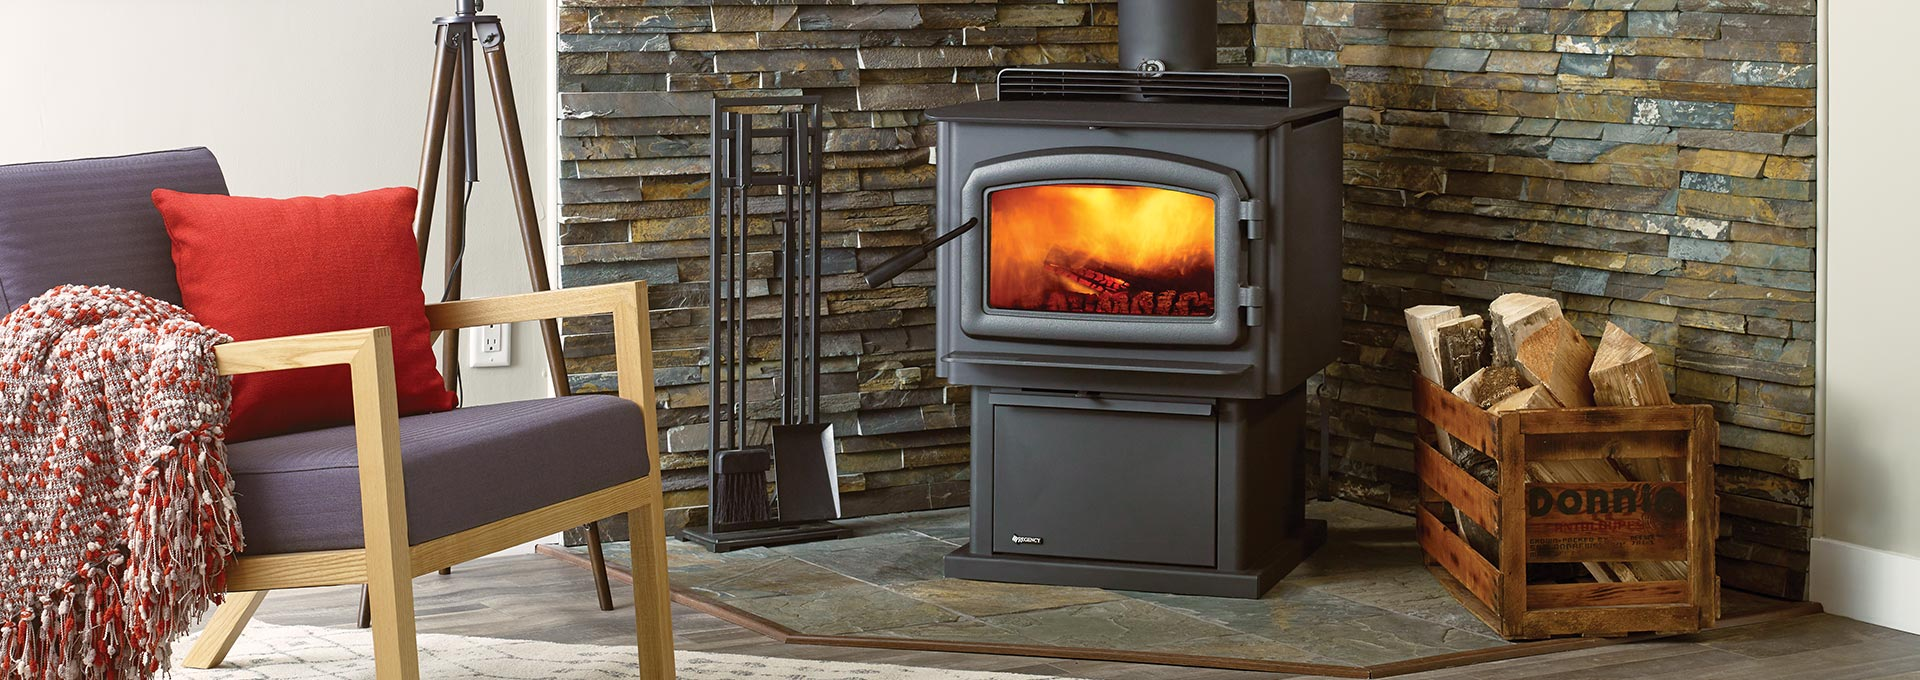 F2500 Hybrid Catalytic Wood Stoves High Efficiency Wood Stoves By Regency